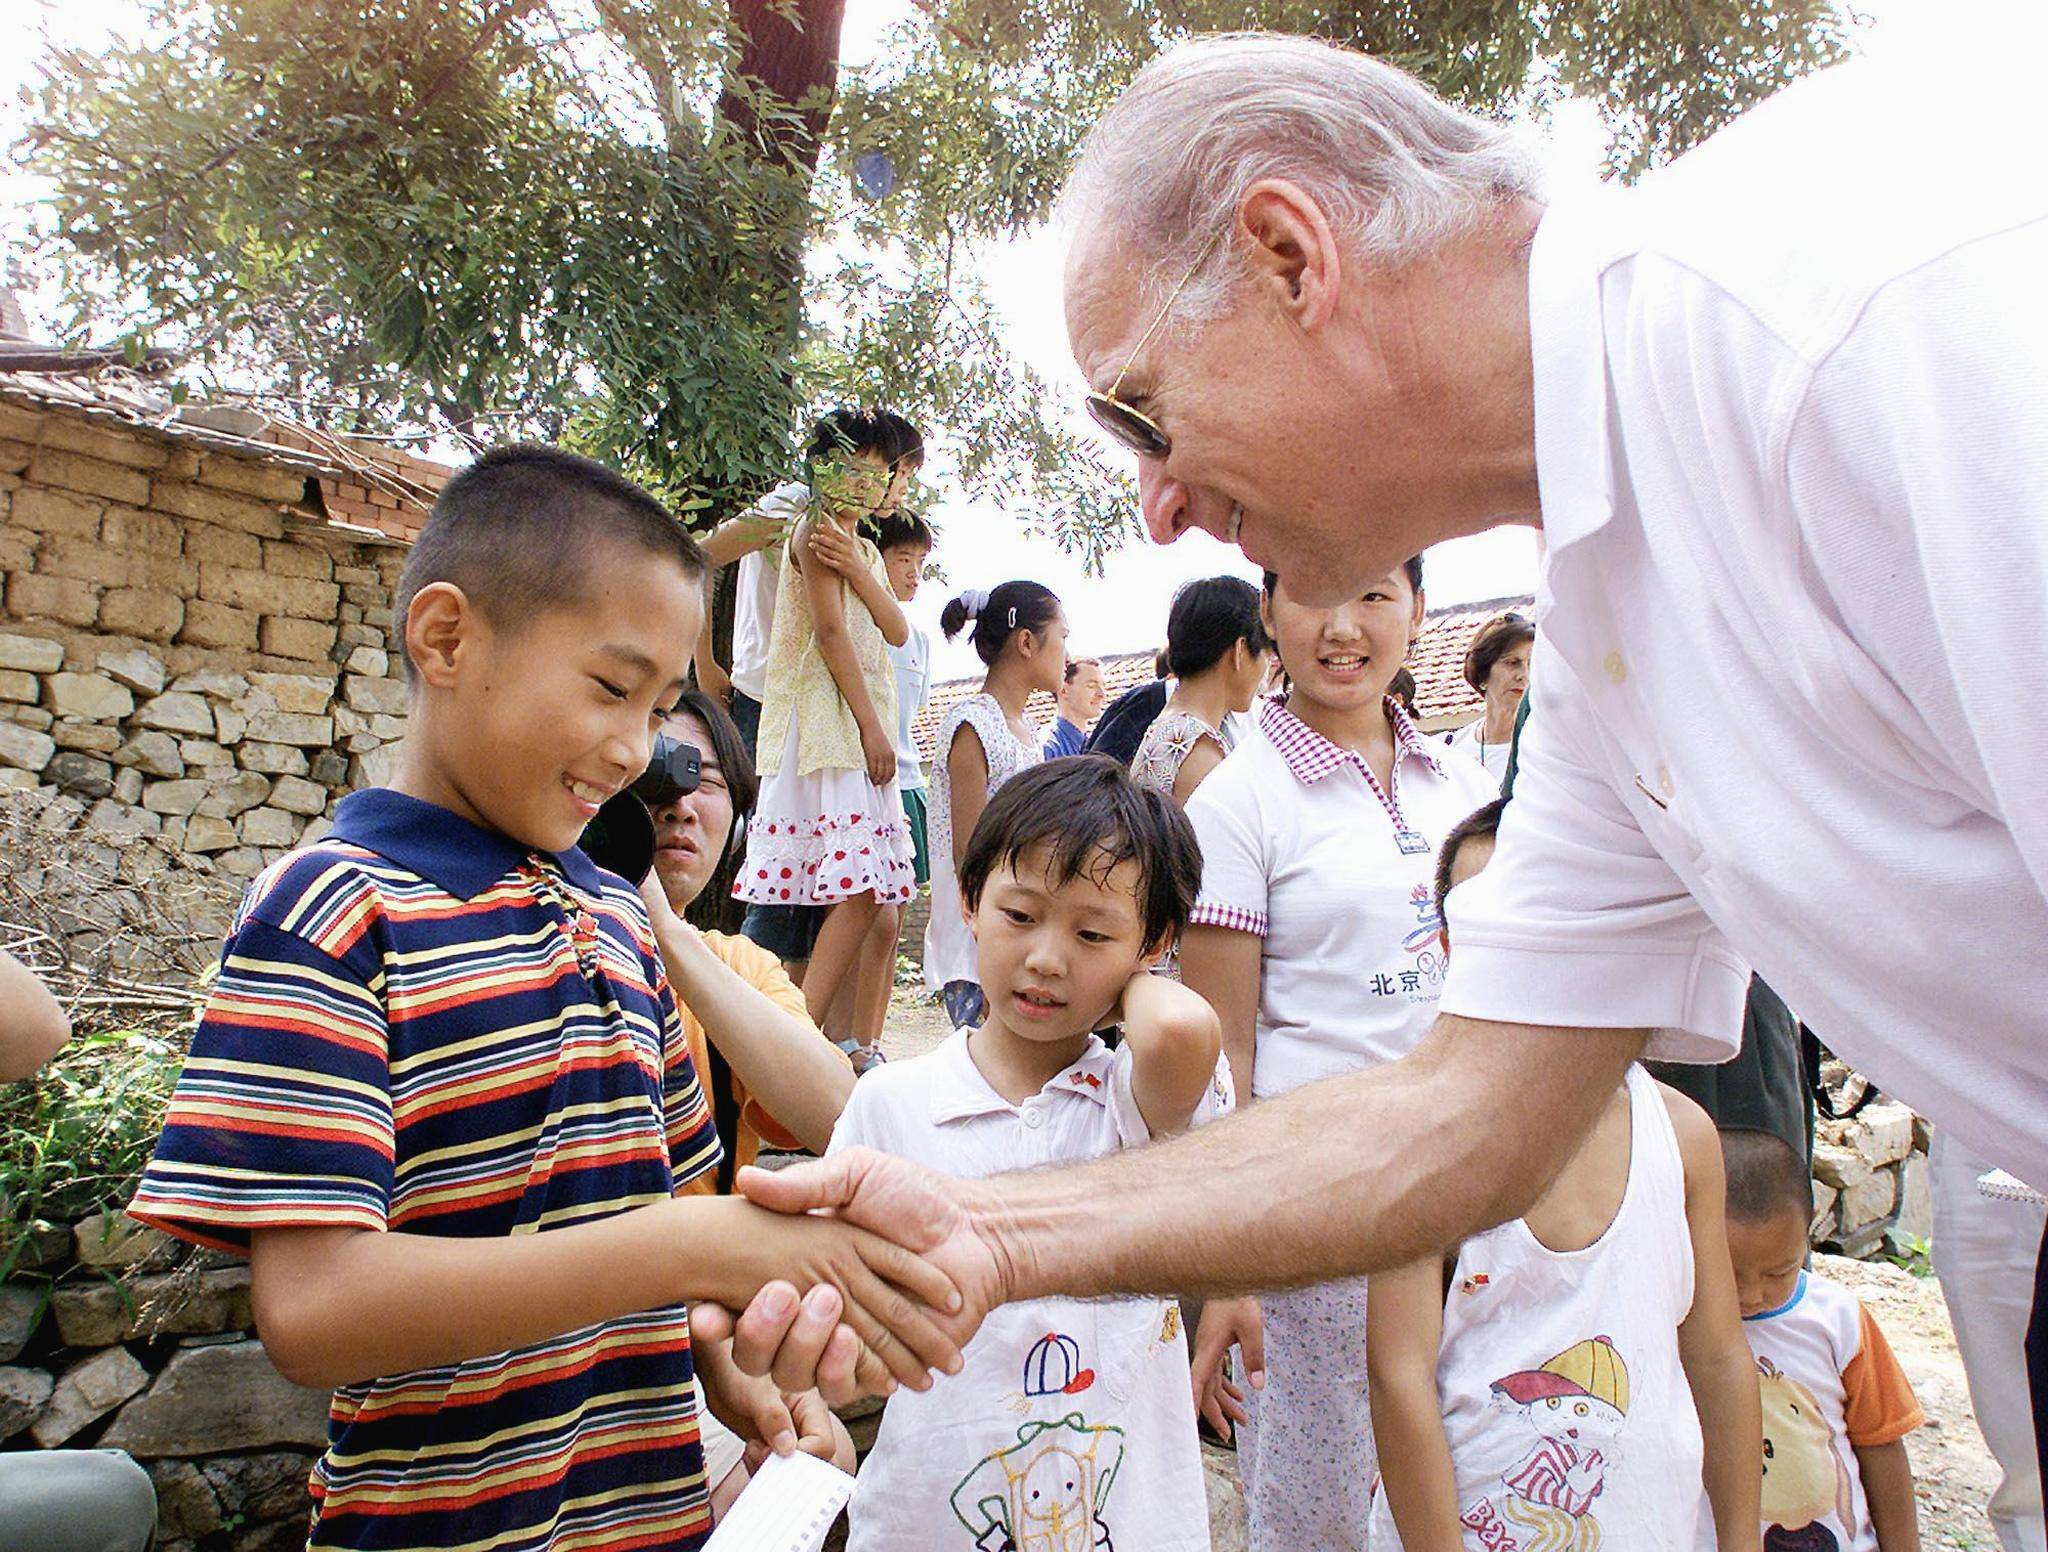 Then-Sen. Joe Biden shakes hands with 9-year-old Gao Shan, the boy Biden proclaimed as the future president of China, during a visit to the village of Yanzikou, north of Beijing, in August 2001. | POOL / VIA AFP-JIJI